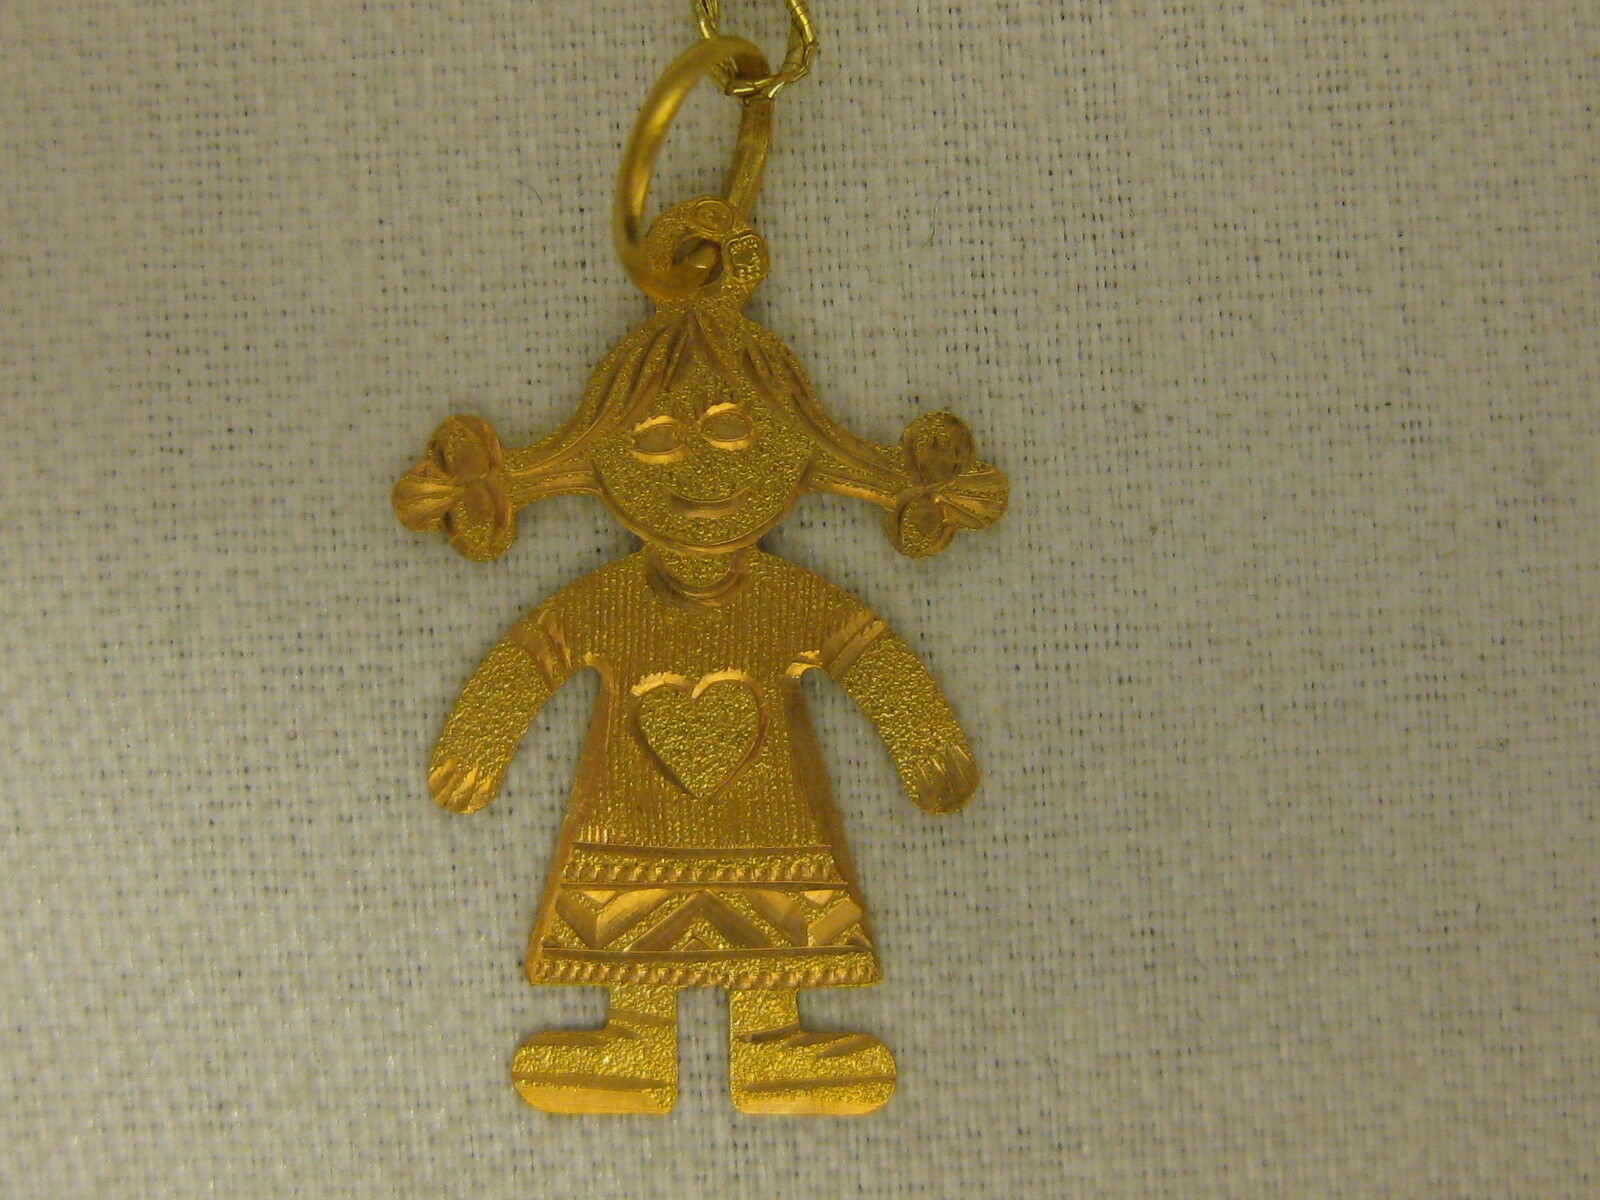 A NEW 19.2 KT GIRL CHARM FROM PORTUGAL